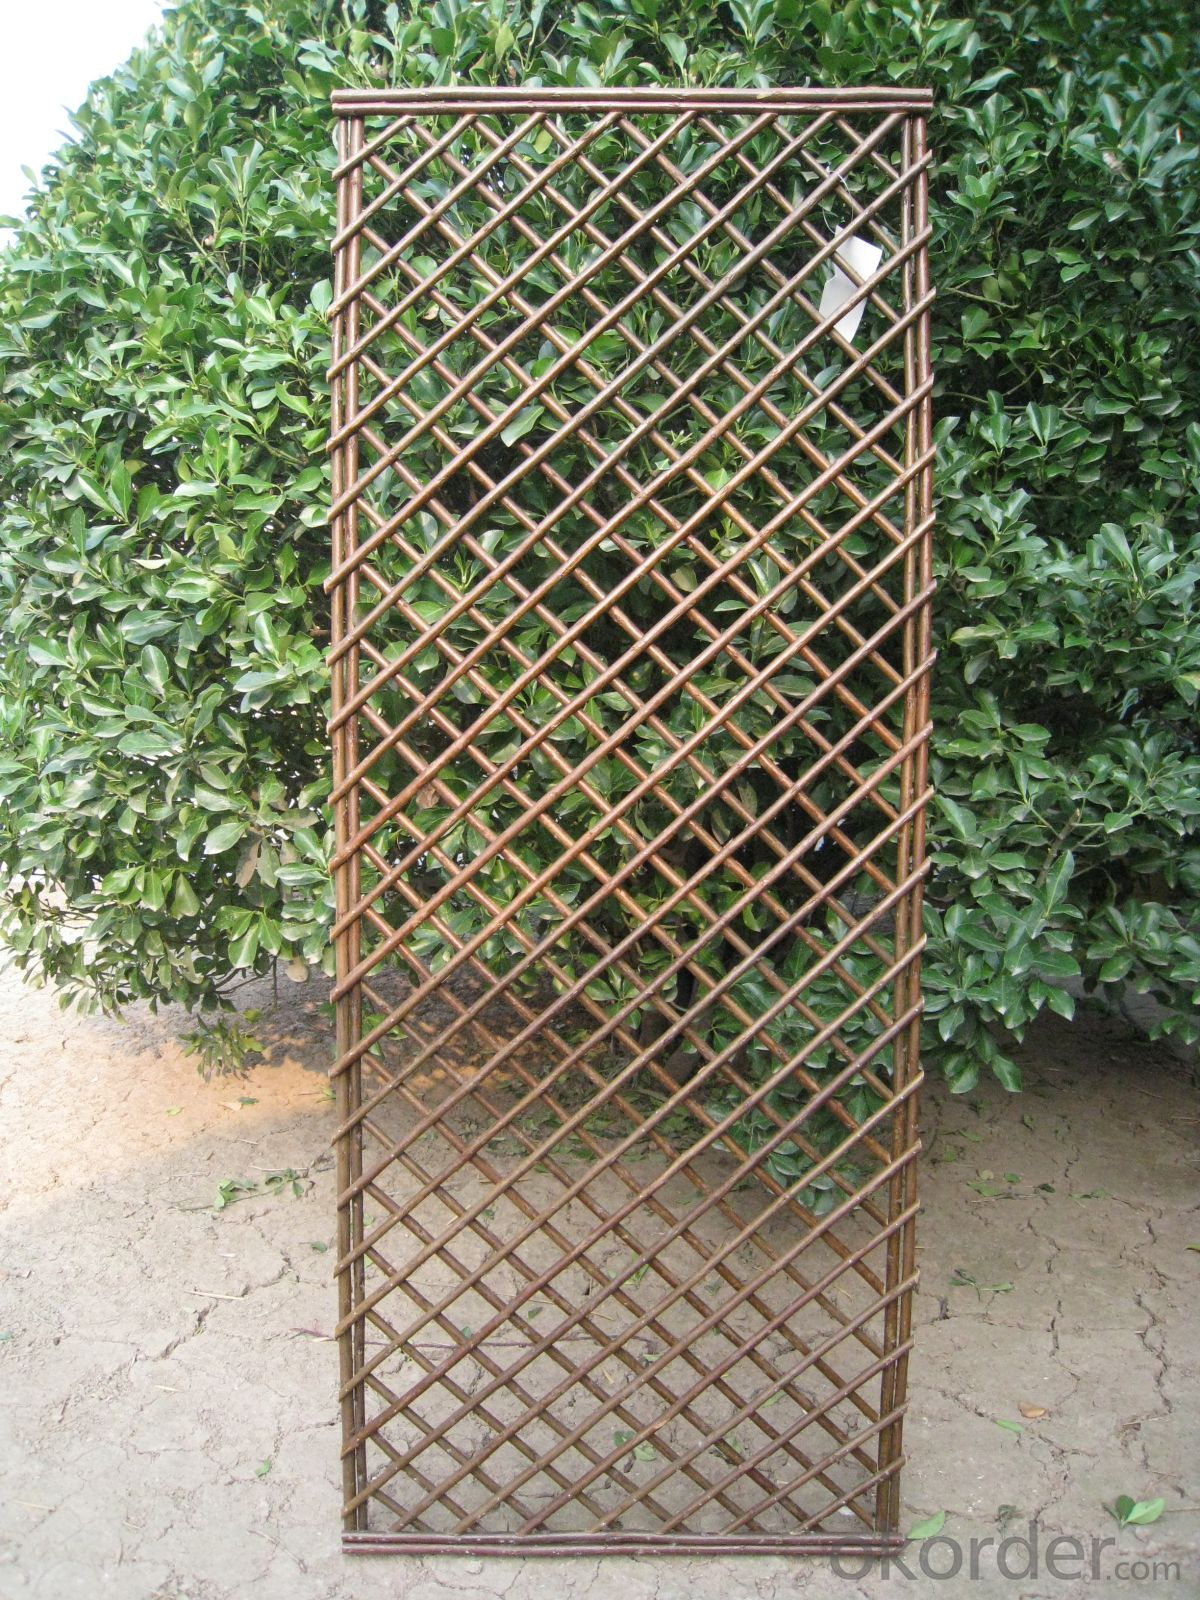 WILLOW TRELLIS FENCING SCREEN